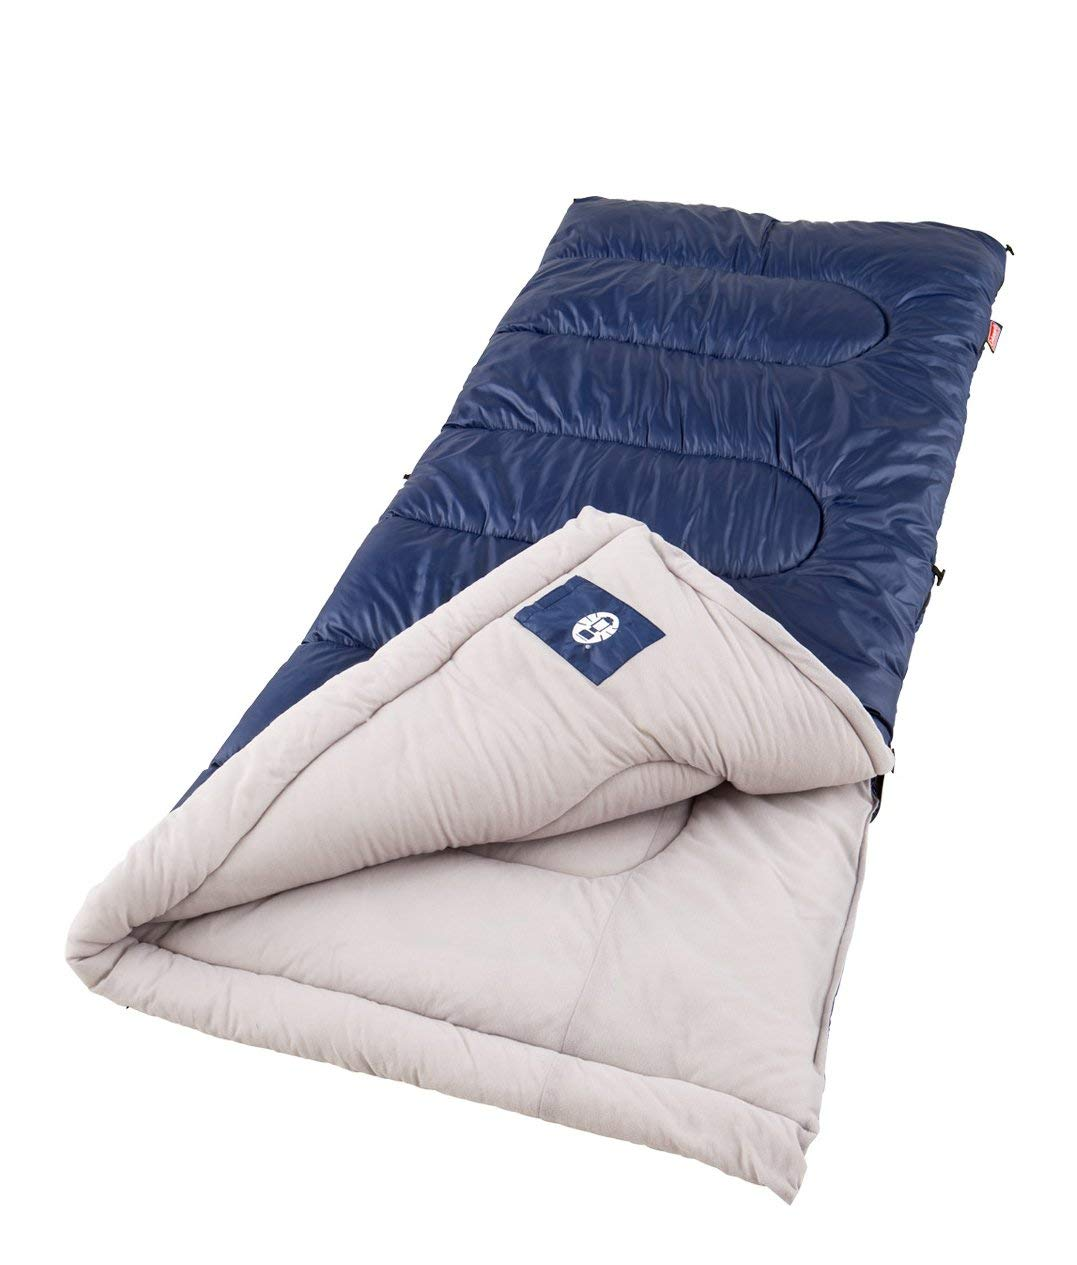 An image of Coleman Palmetto Men's Polyester Sleeping Bag